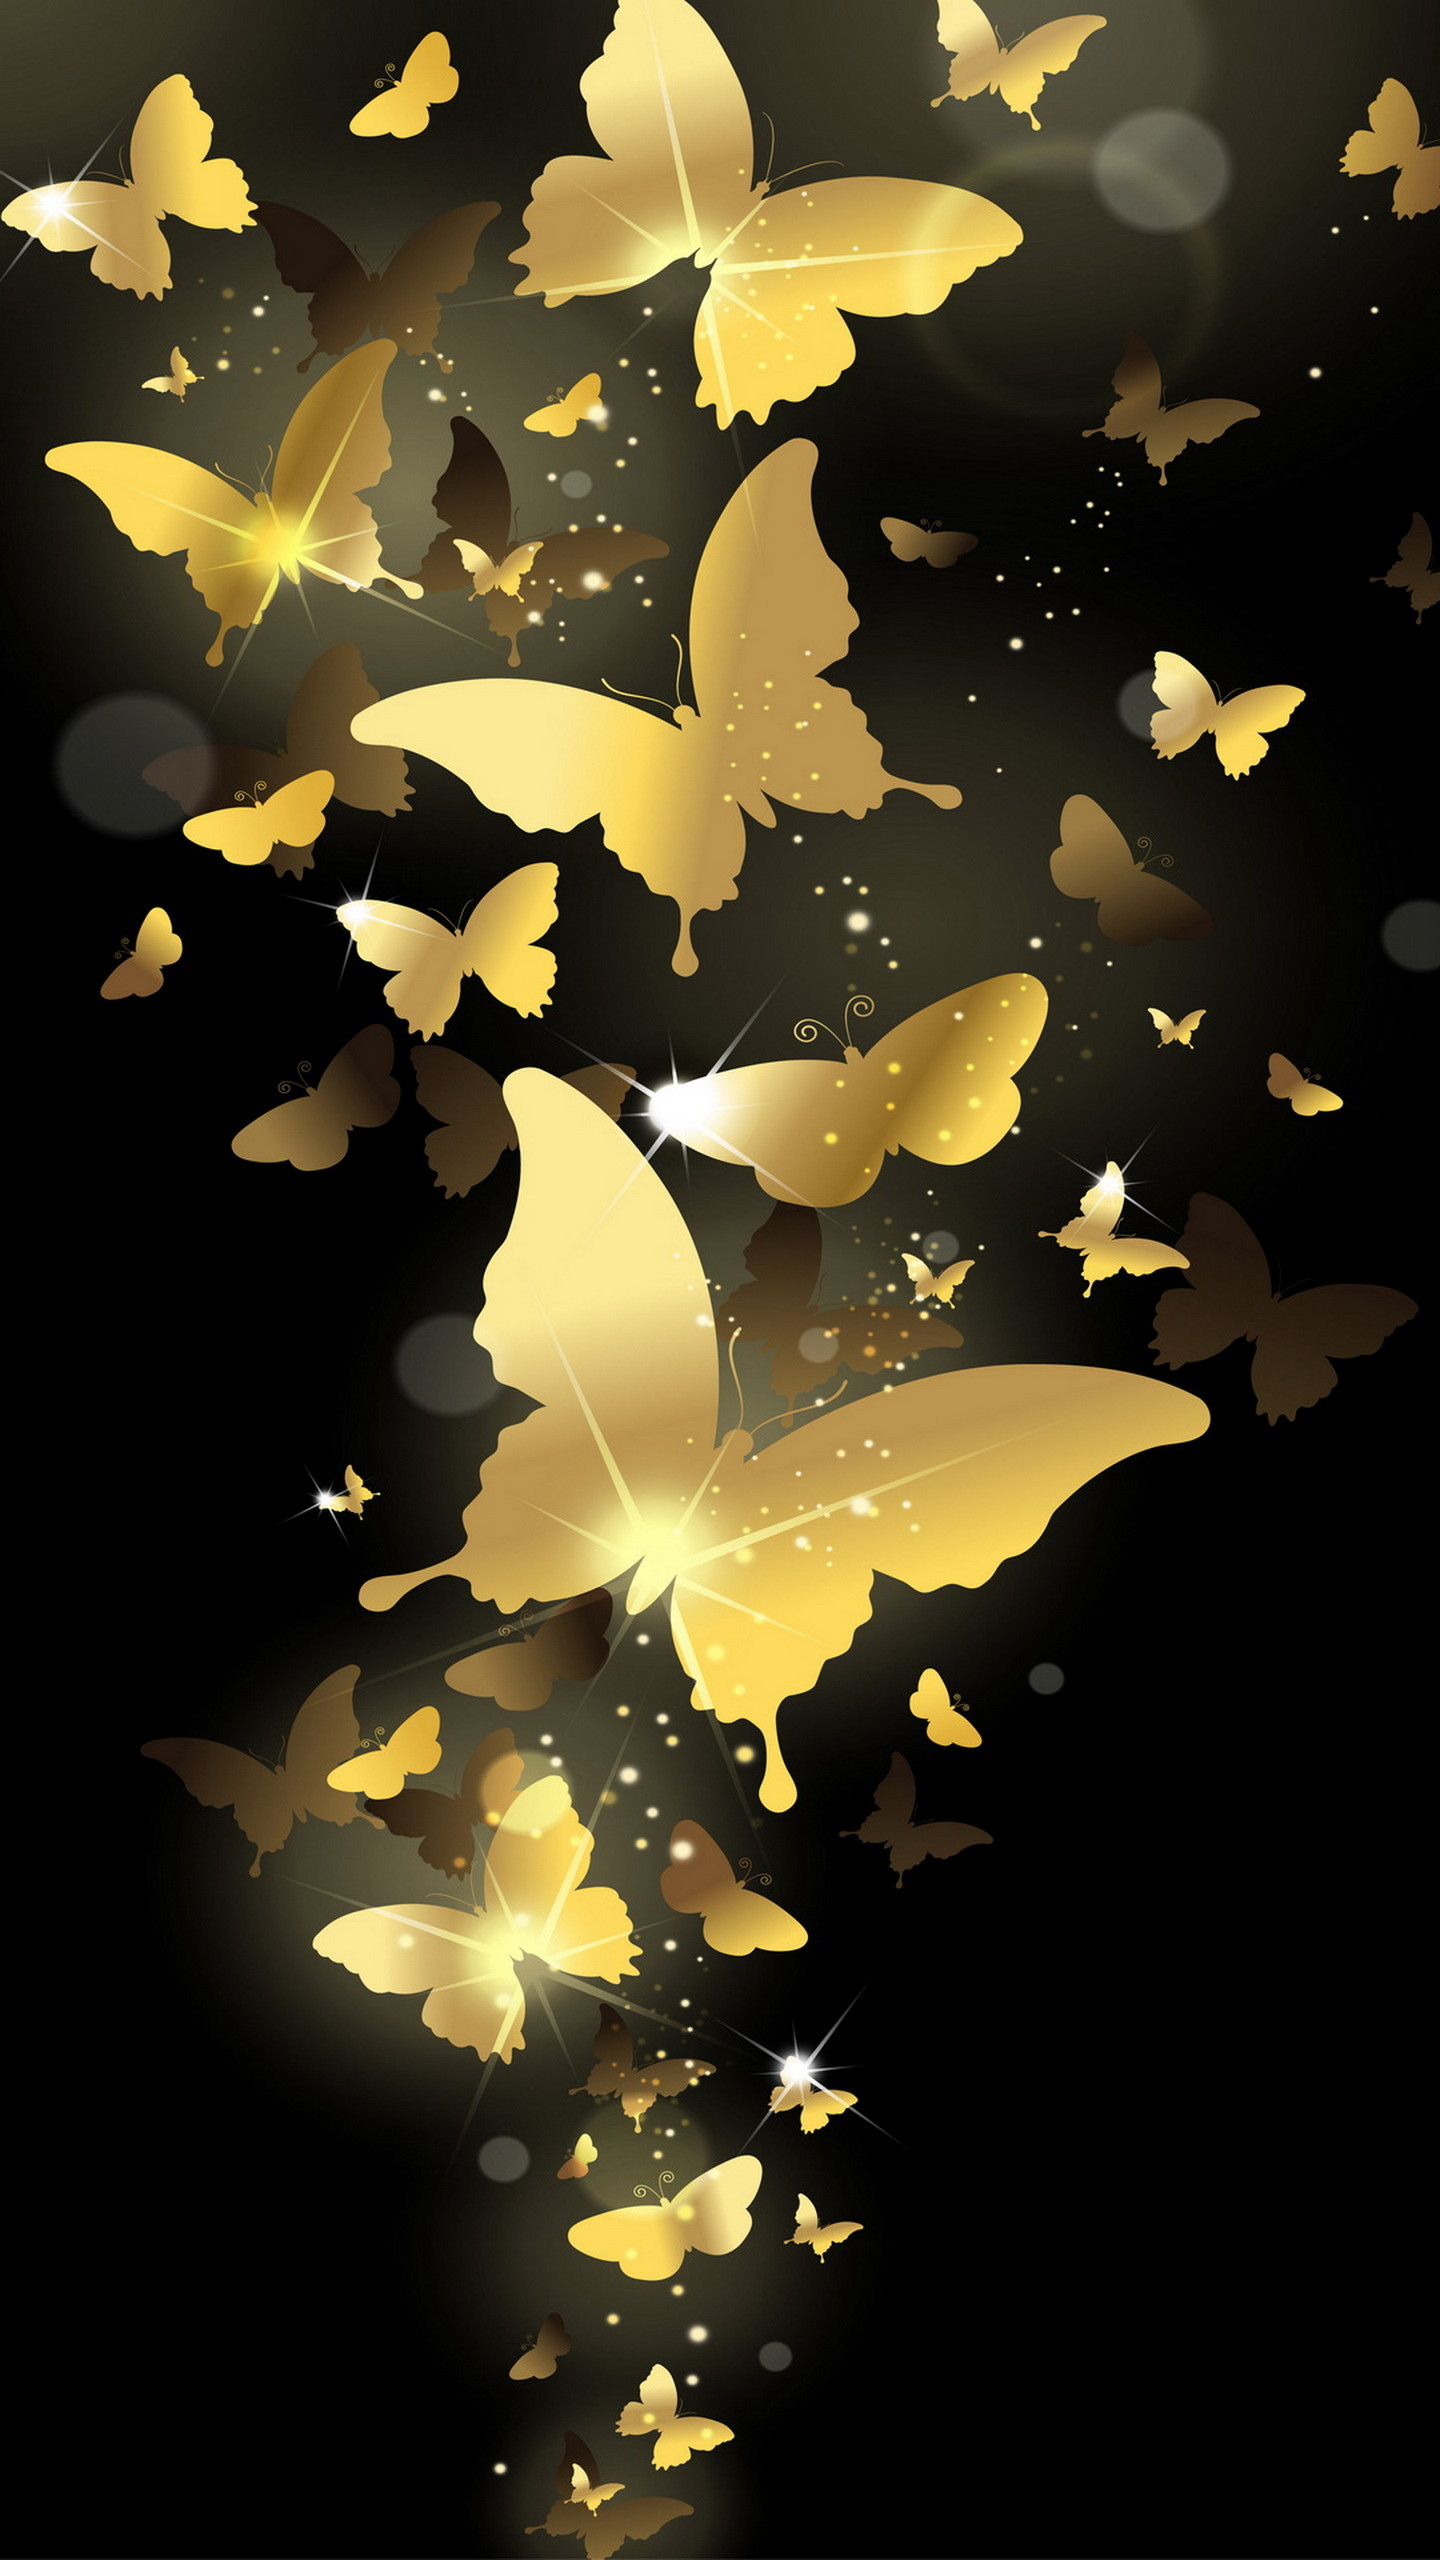 Flying Golden Butterflies Lockscreen Lock Screen Samsung Galaxy  Note 4 Wallpaper, Quad HD,